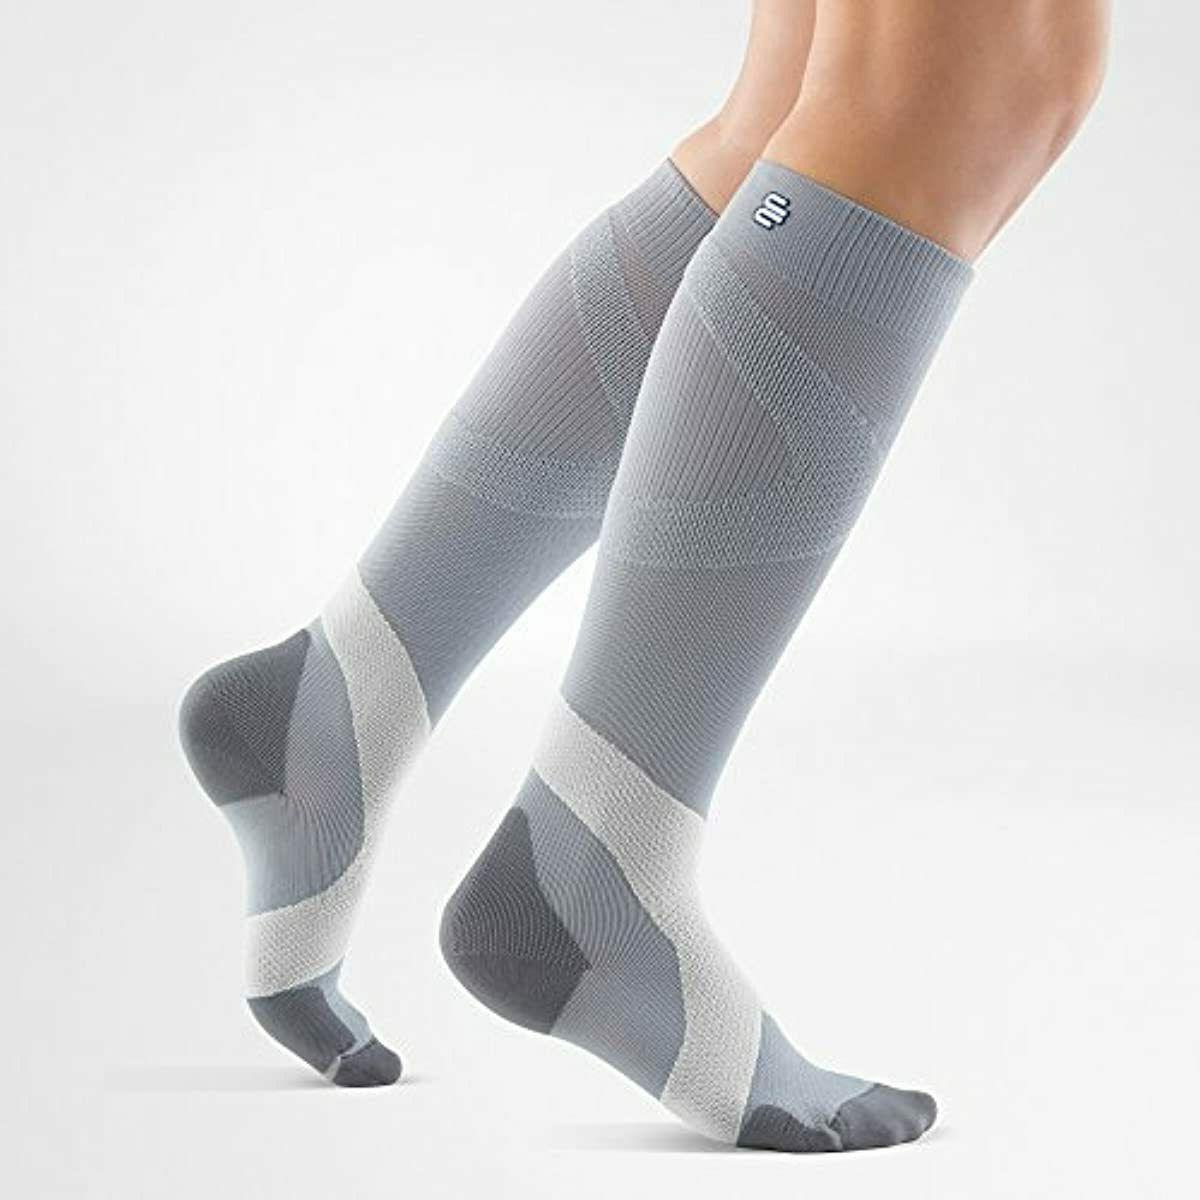 bauerfeind sports ball and racket unisex compression